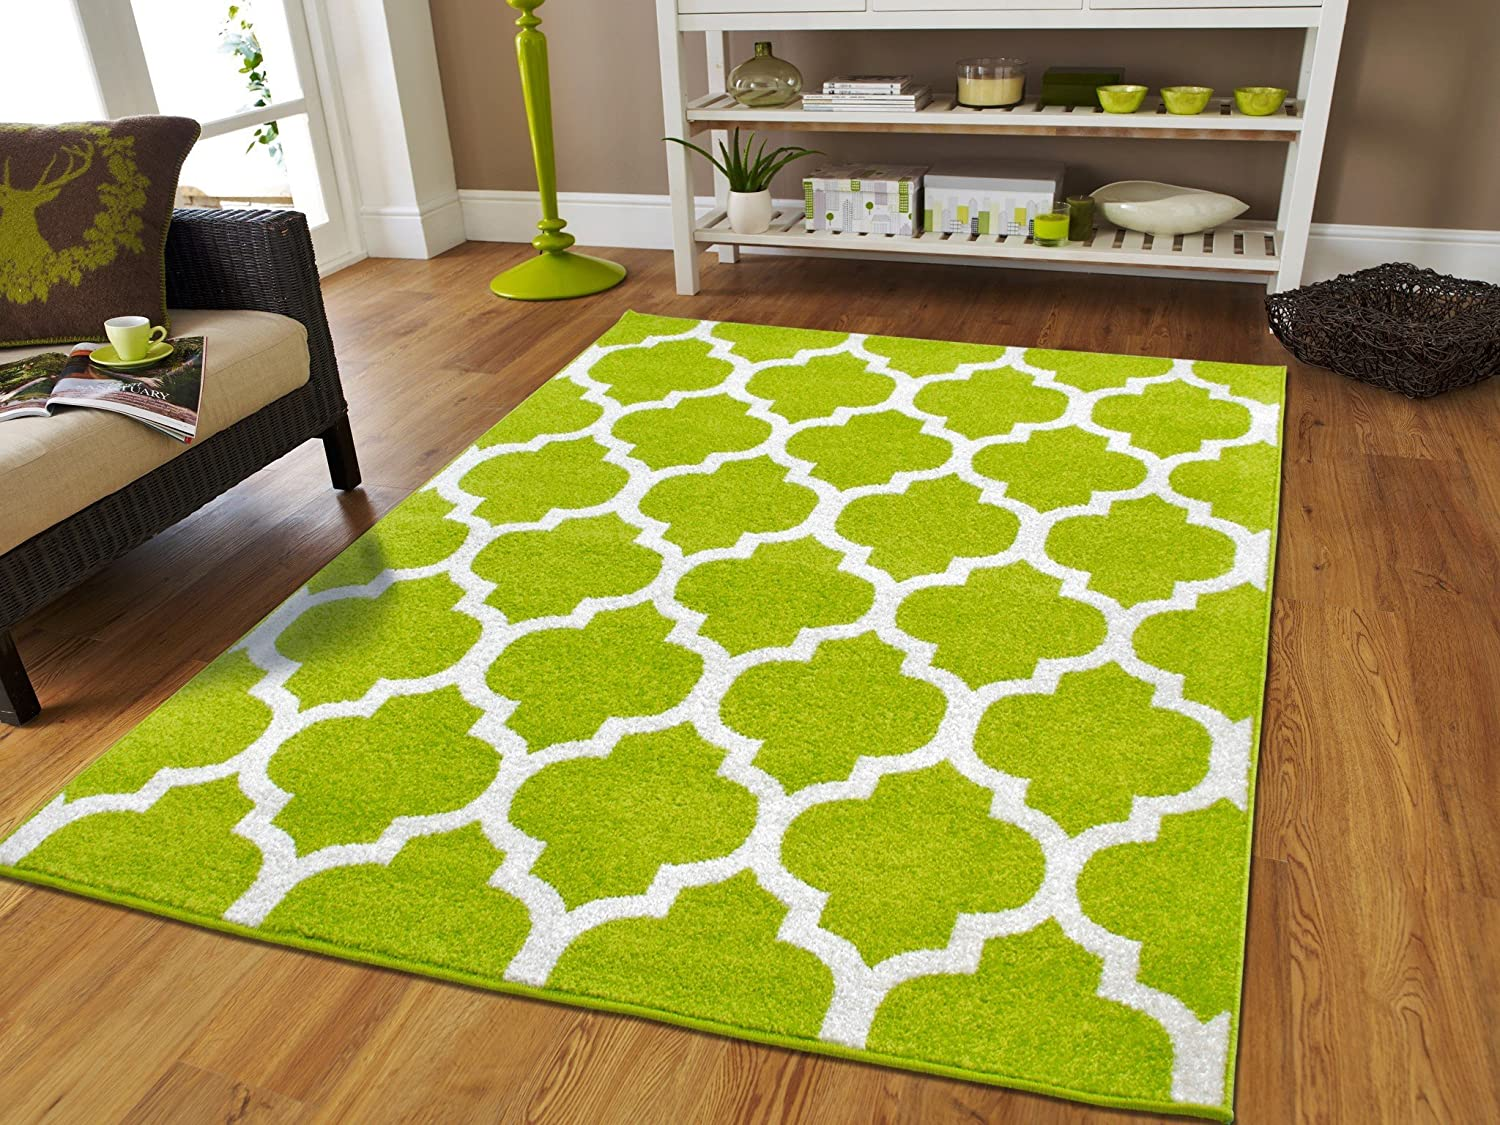 Amazon New Fashion Luxury Morrocan Trellis Rugs Green And White With Lines For Dining Room 8x10 Soft Bedrooms Large Living